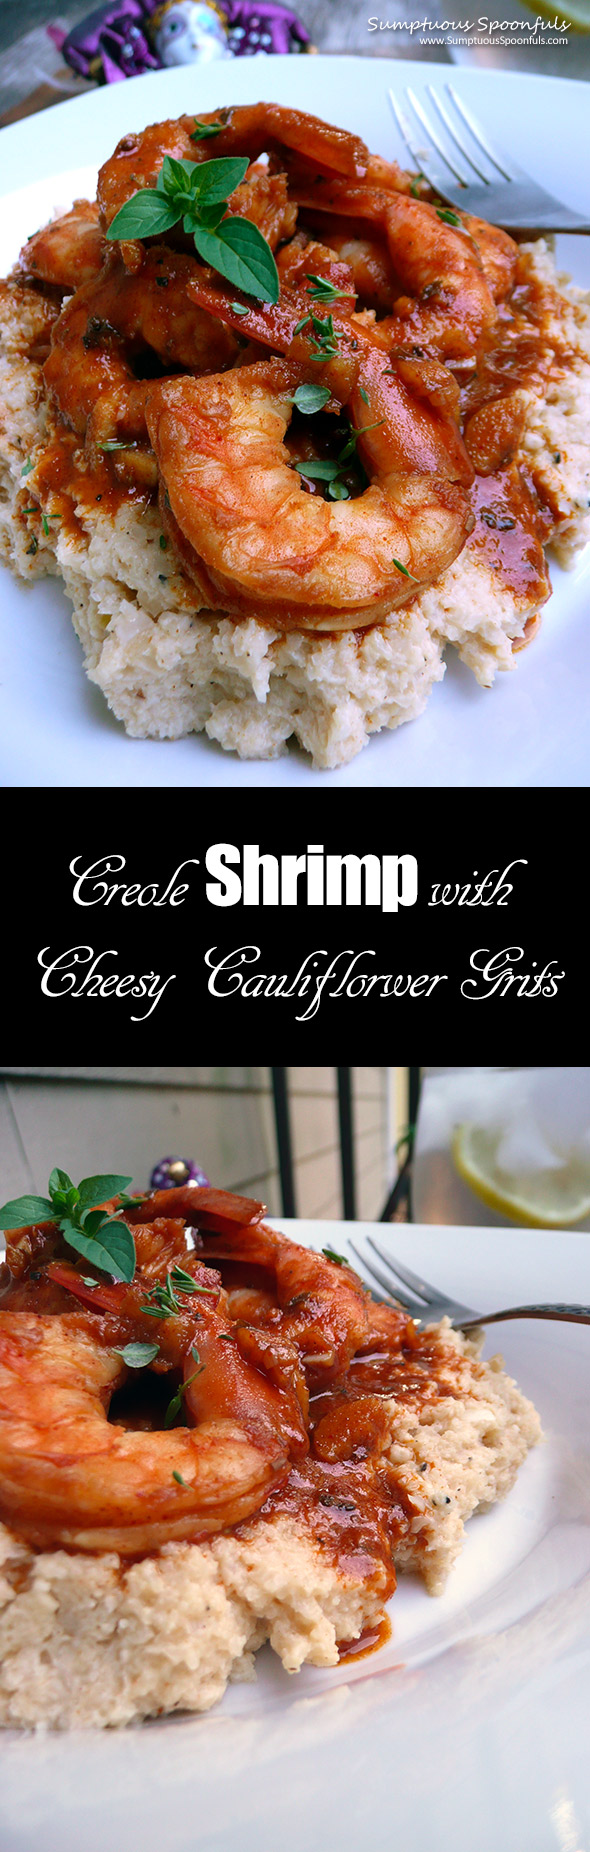 Creole Shrimp with Cheesy Cauliflower Grits ~ Sumptuous Spoonfuls #lowcarb #healthy #soulfood #recipe